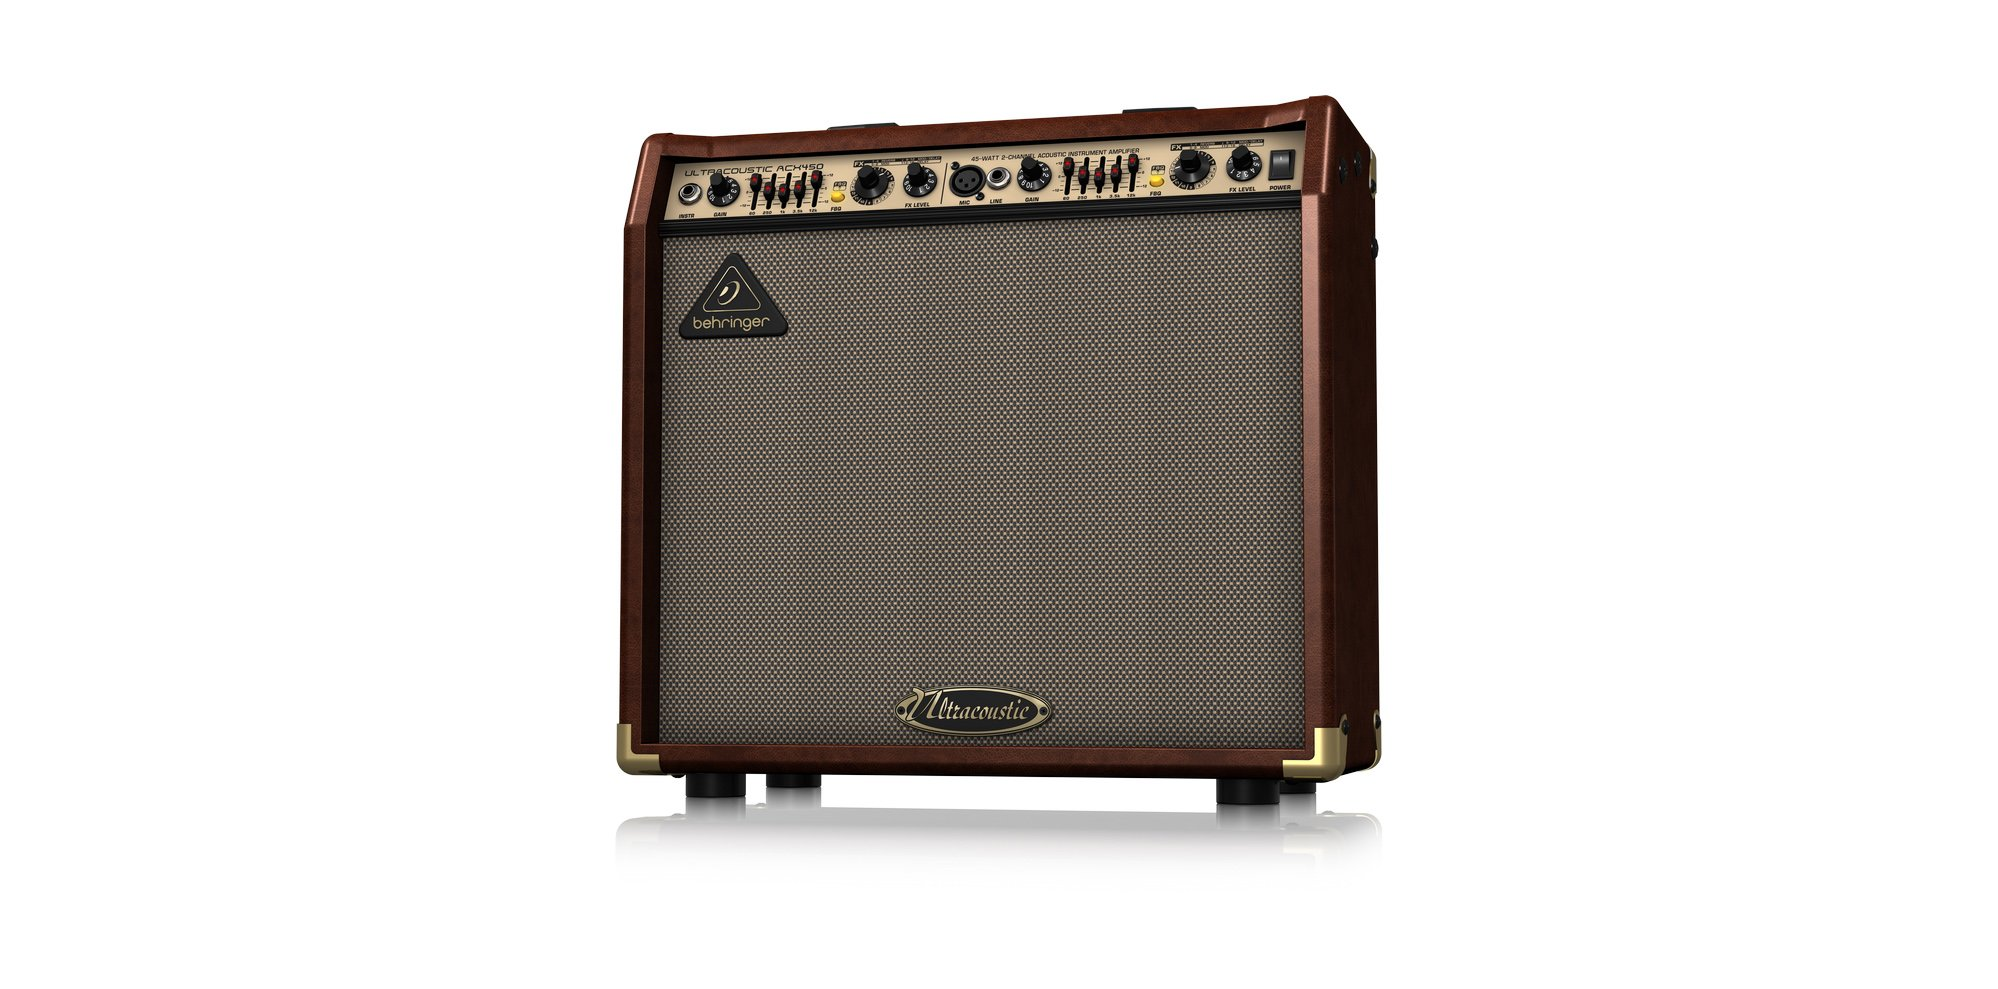 Behringer Ultracoustic Acx450 : behringer acx450 ultracoustic 45 w 2 channel acoustic instrument amplifier full compass systems ~ Russianpoet.info Haus und Dekorationen